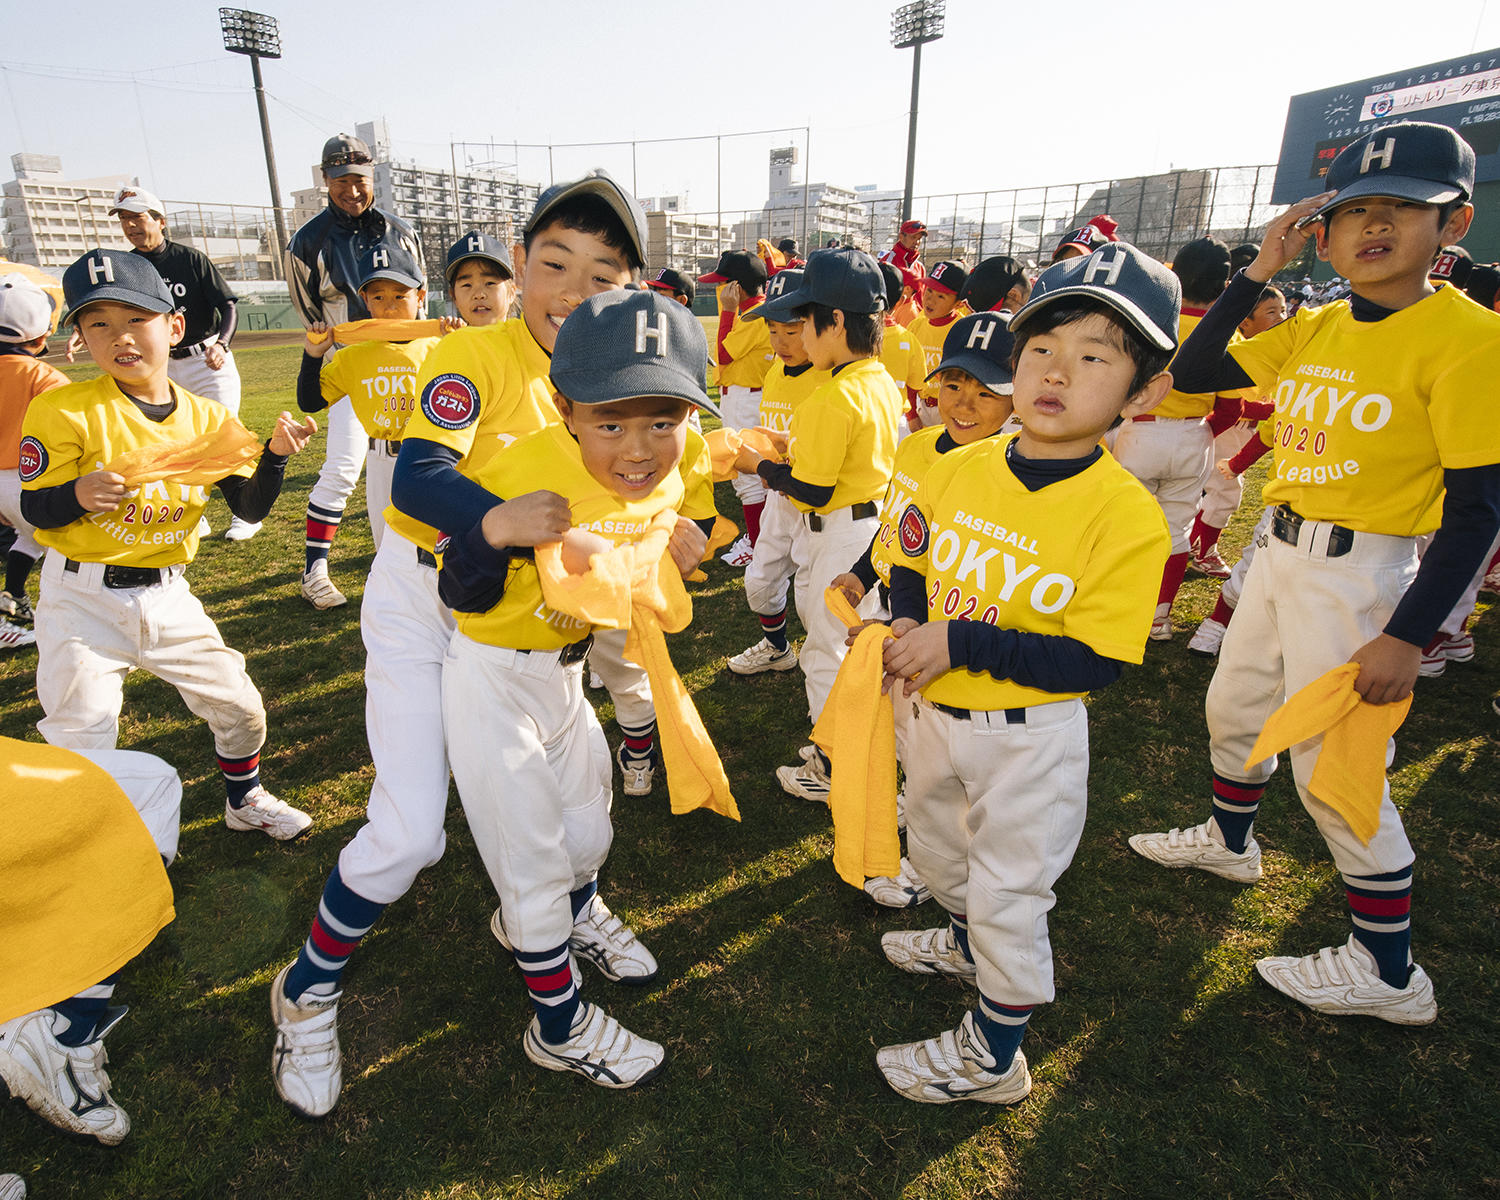 be3da7a8fa395 Little League Baseball in Japan is an important part of many children s  upbringing